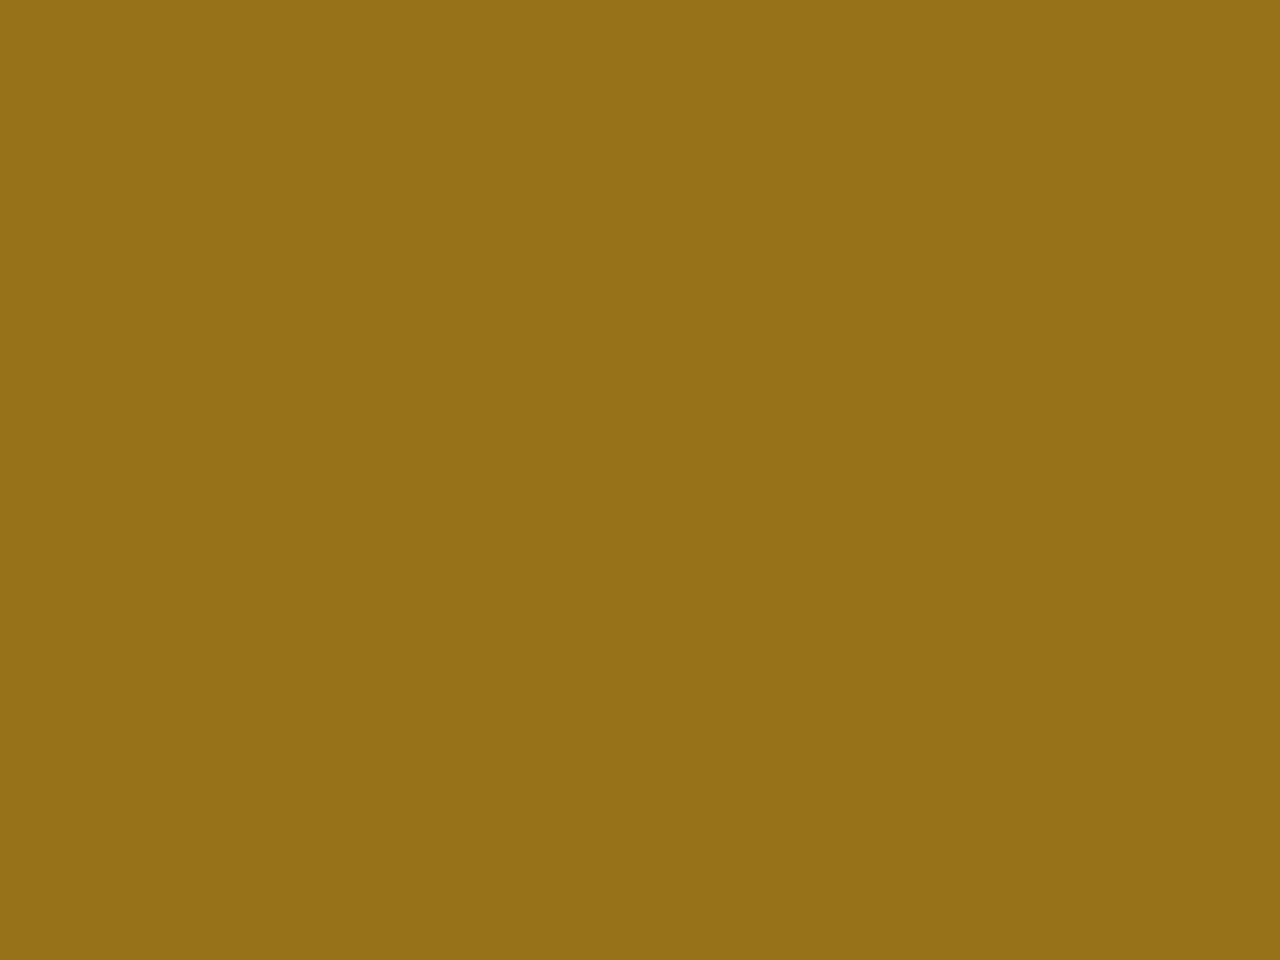 1280x960 Mode Beige Solid Color Background